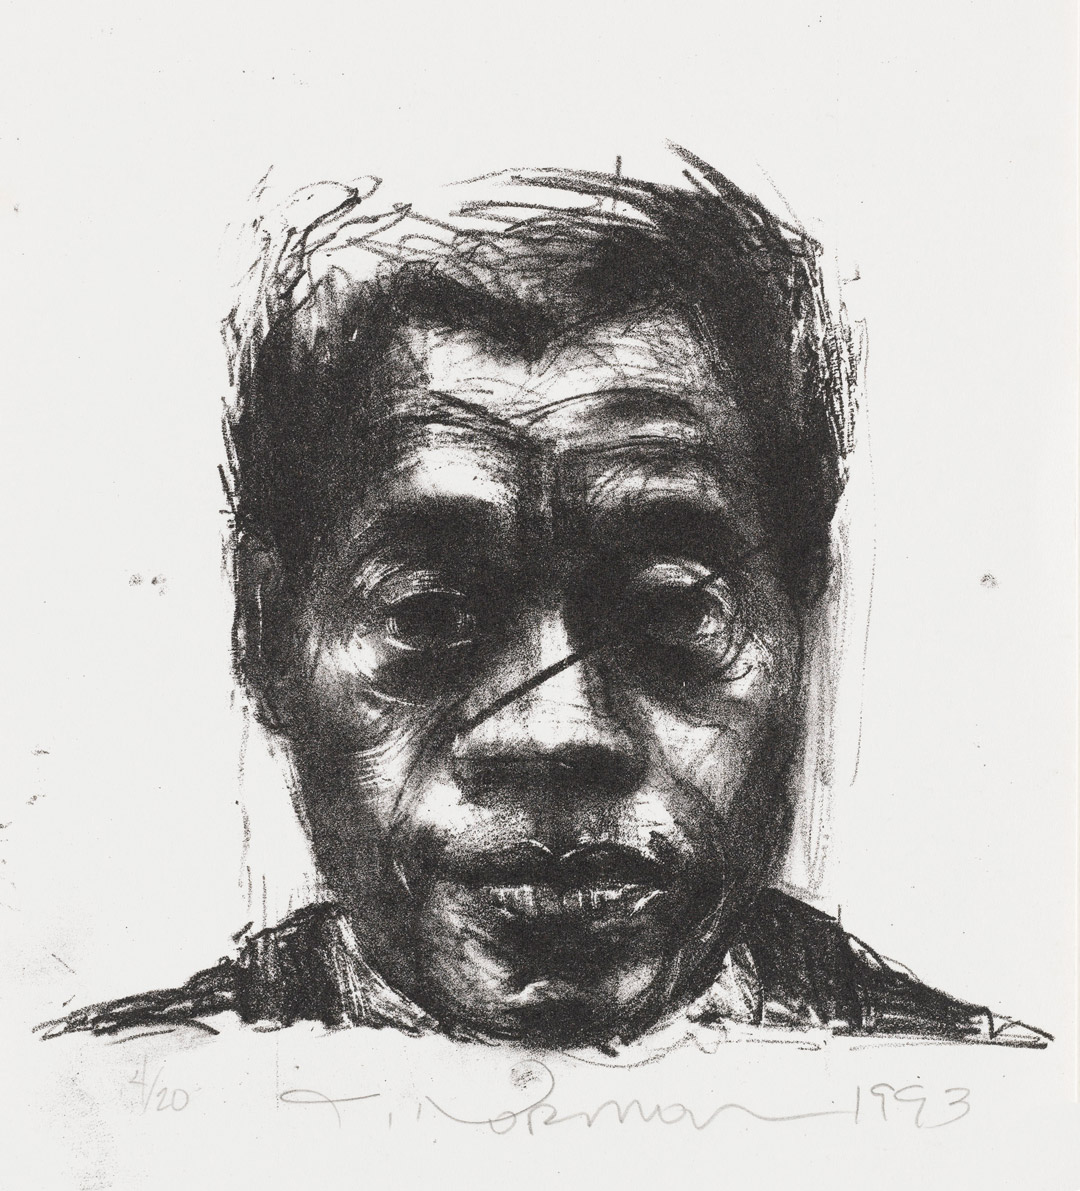 James Baldwin by Joseph Norman